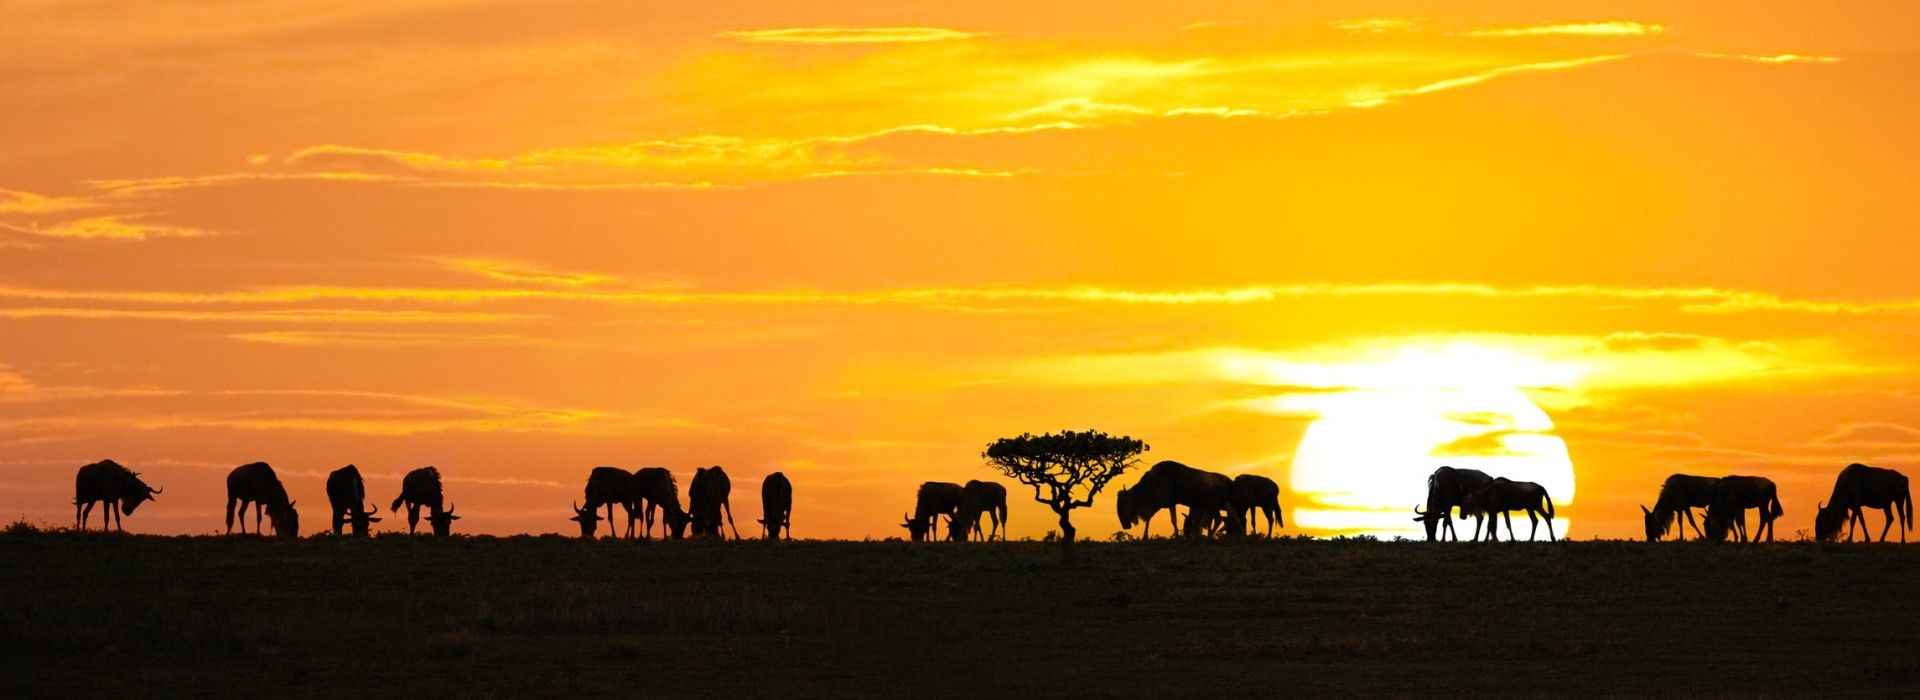 Sightseeing, attractions, culture and history Tours in Mount Kilimanjaro National Park